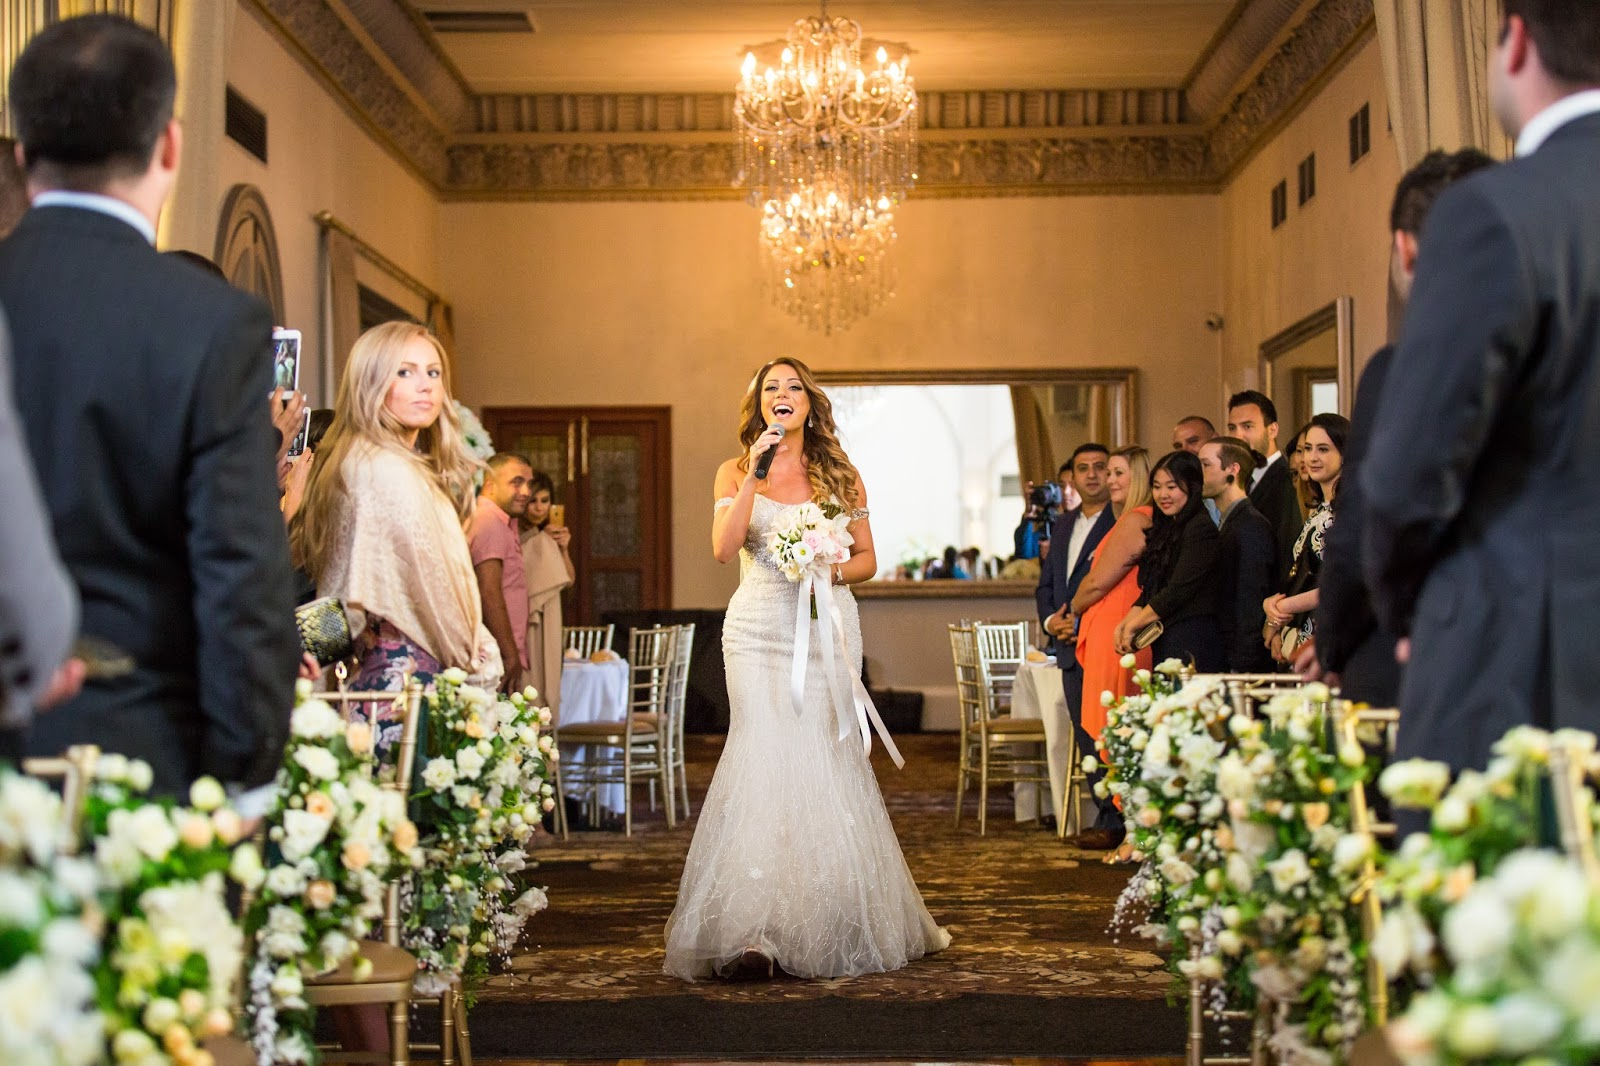 January 7 2017 Remember That Movie The Wedding Planner With Jennifer Lopez